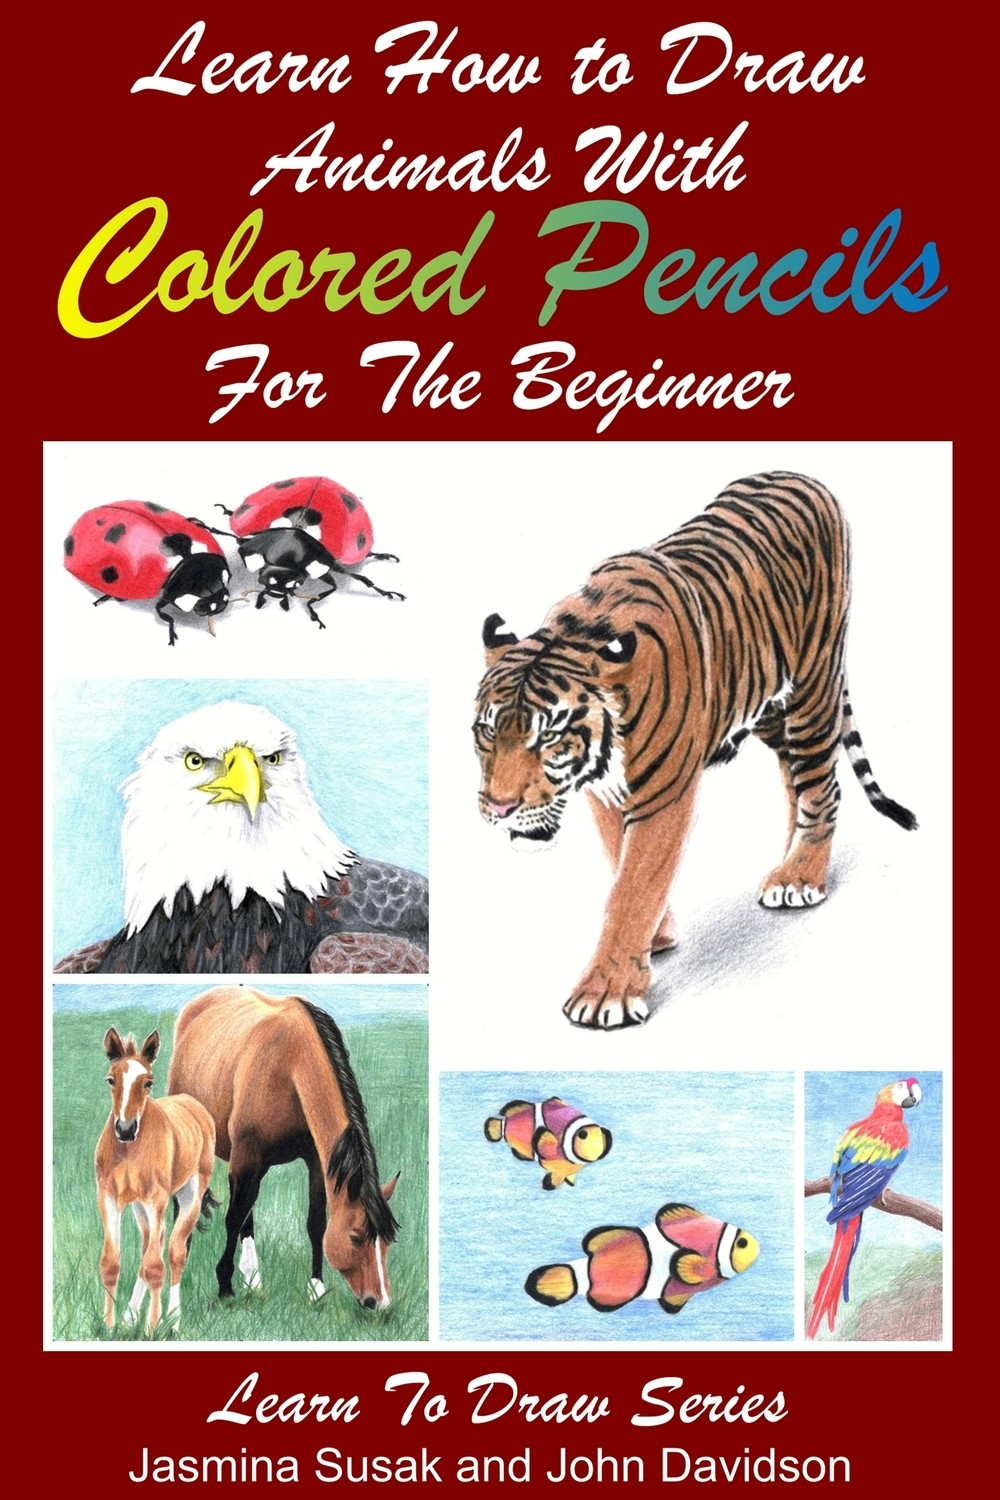 Learn How to Draw Animals - Free Book